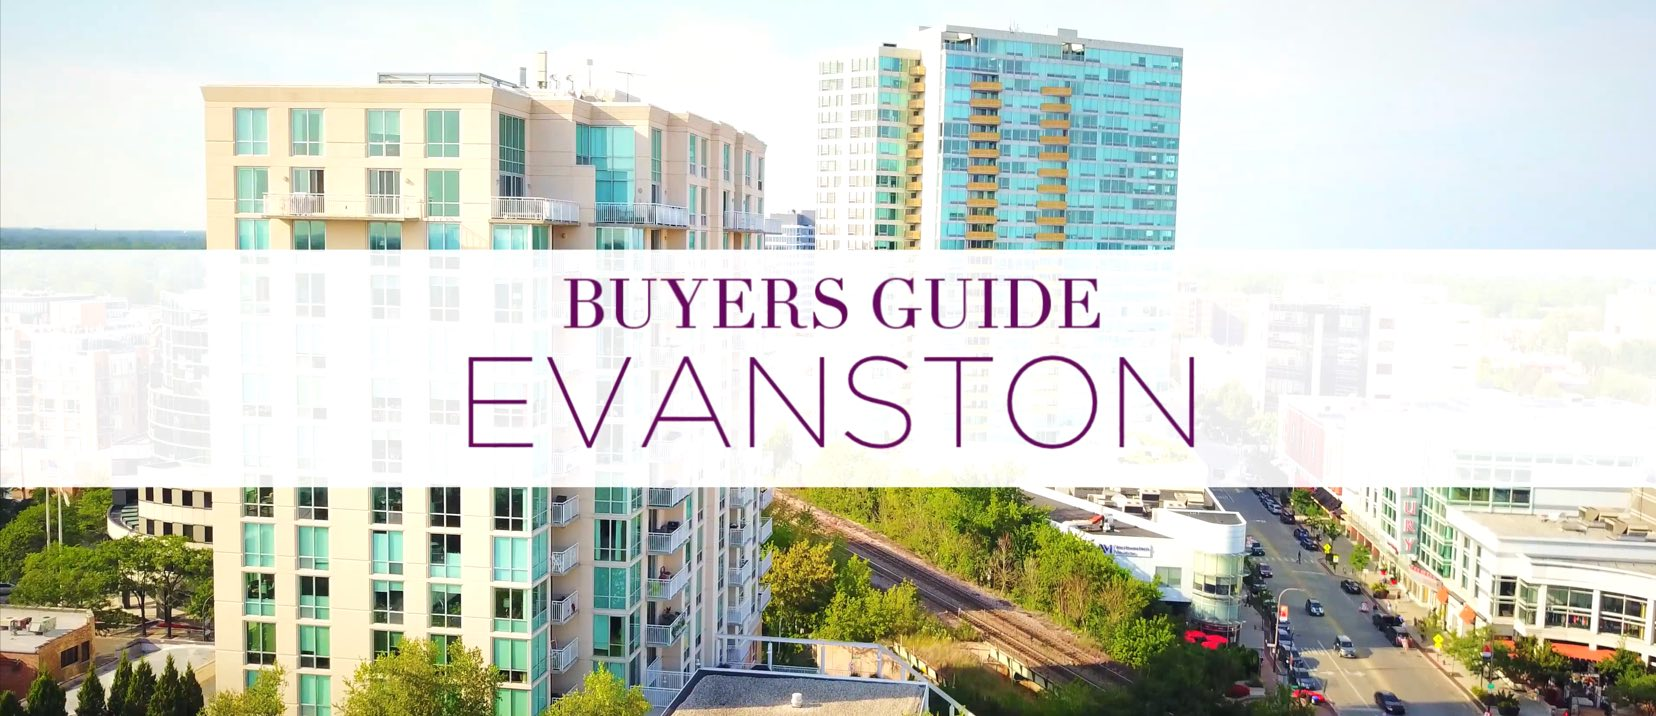 Buyers Guide Evanston